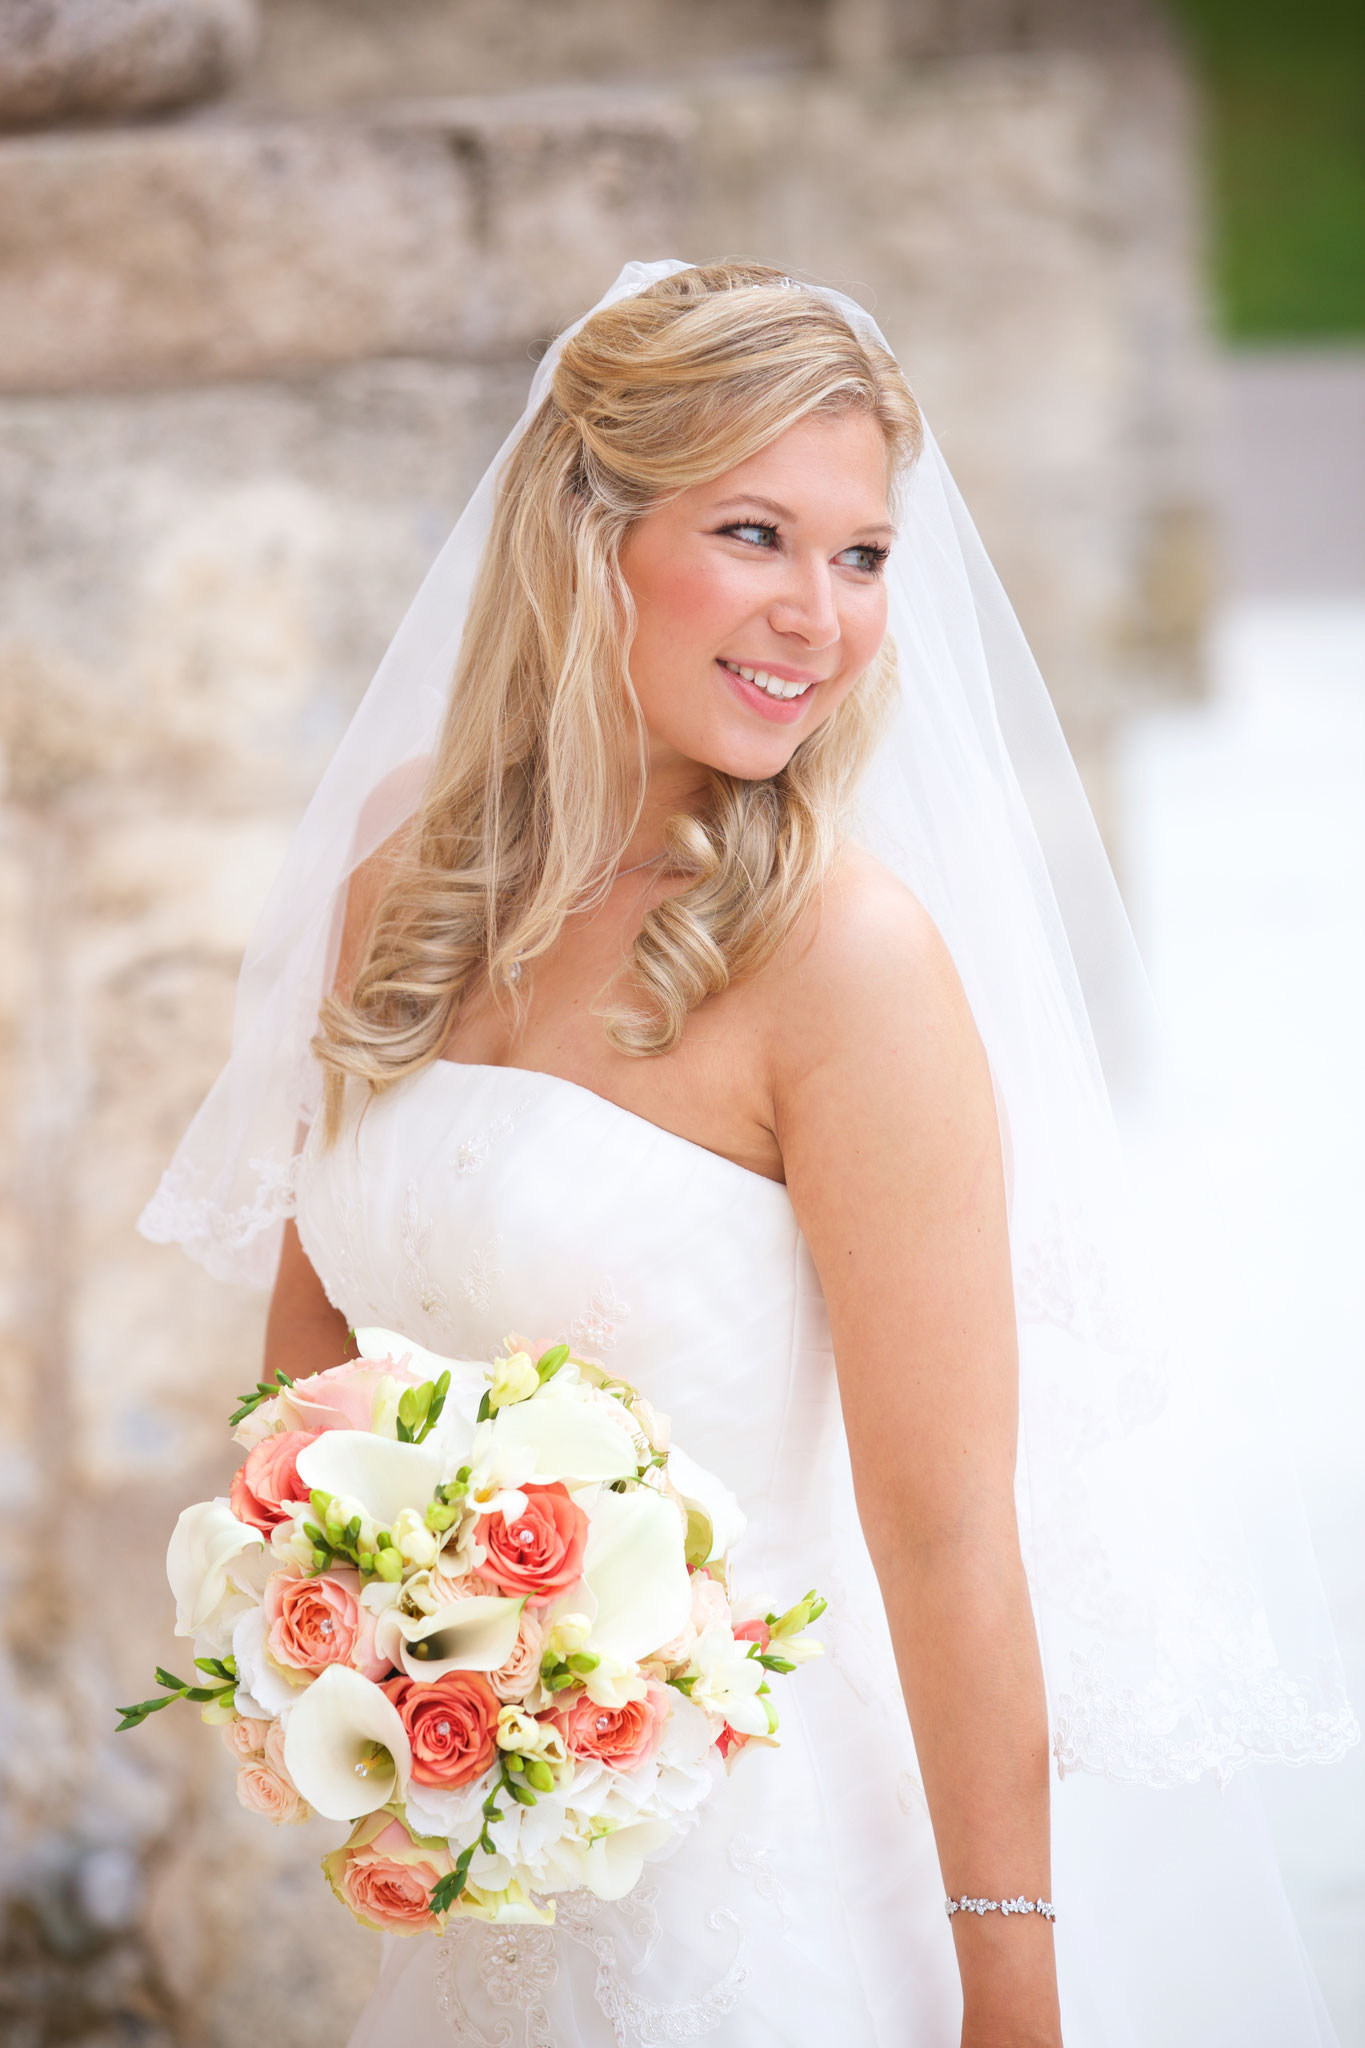 Sommerhochzeit in Bayer - Braut Make-Up by Melanie von Wandelbar Make-Up